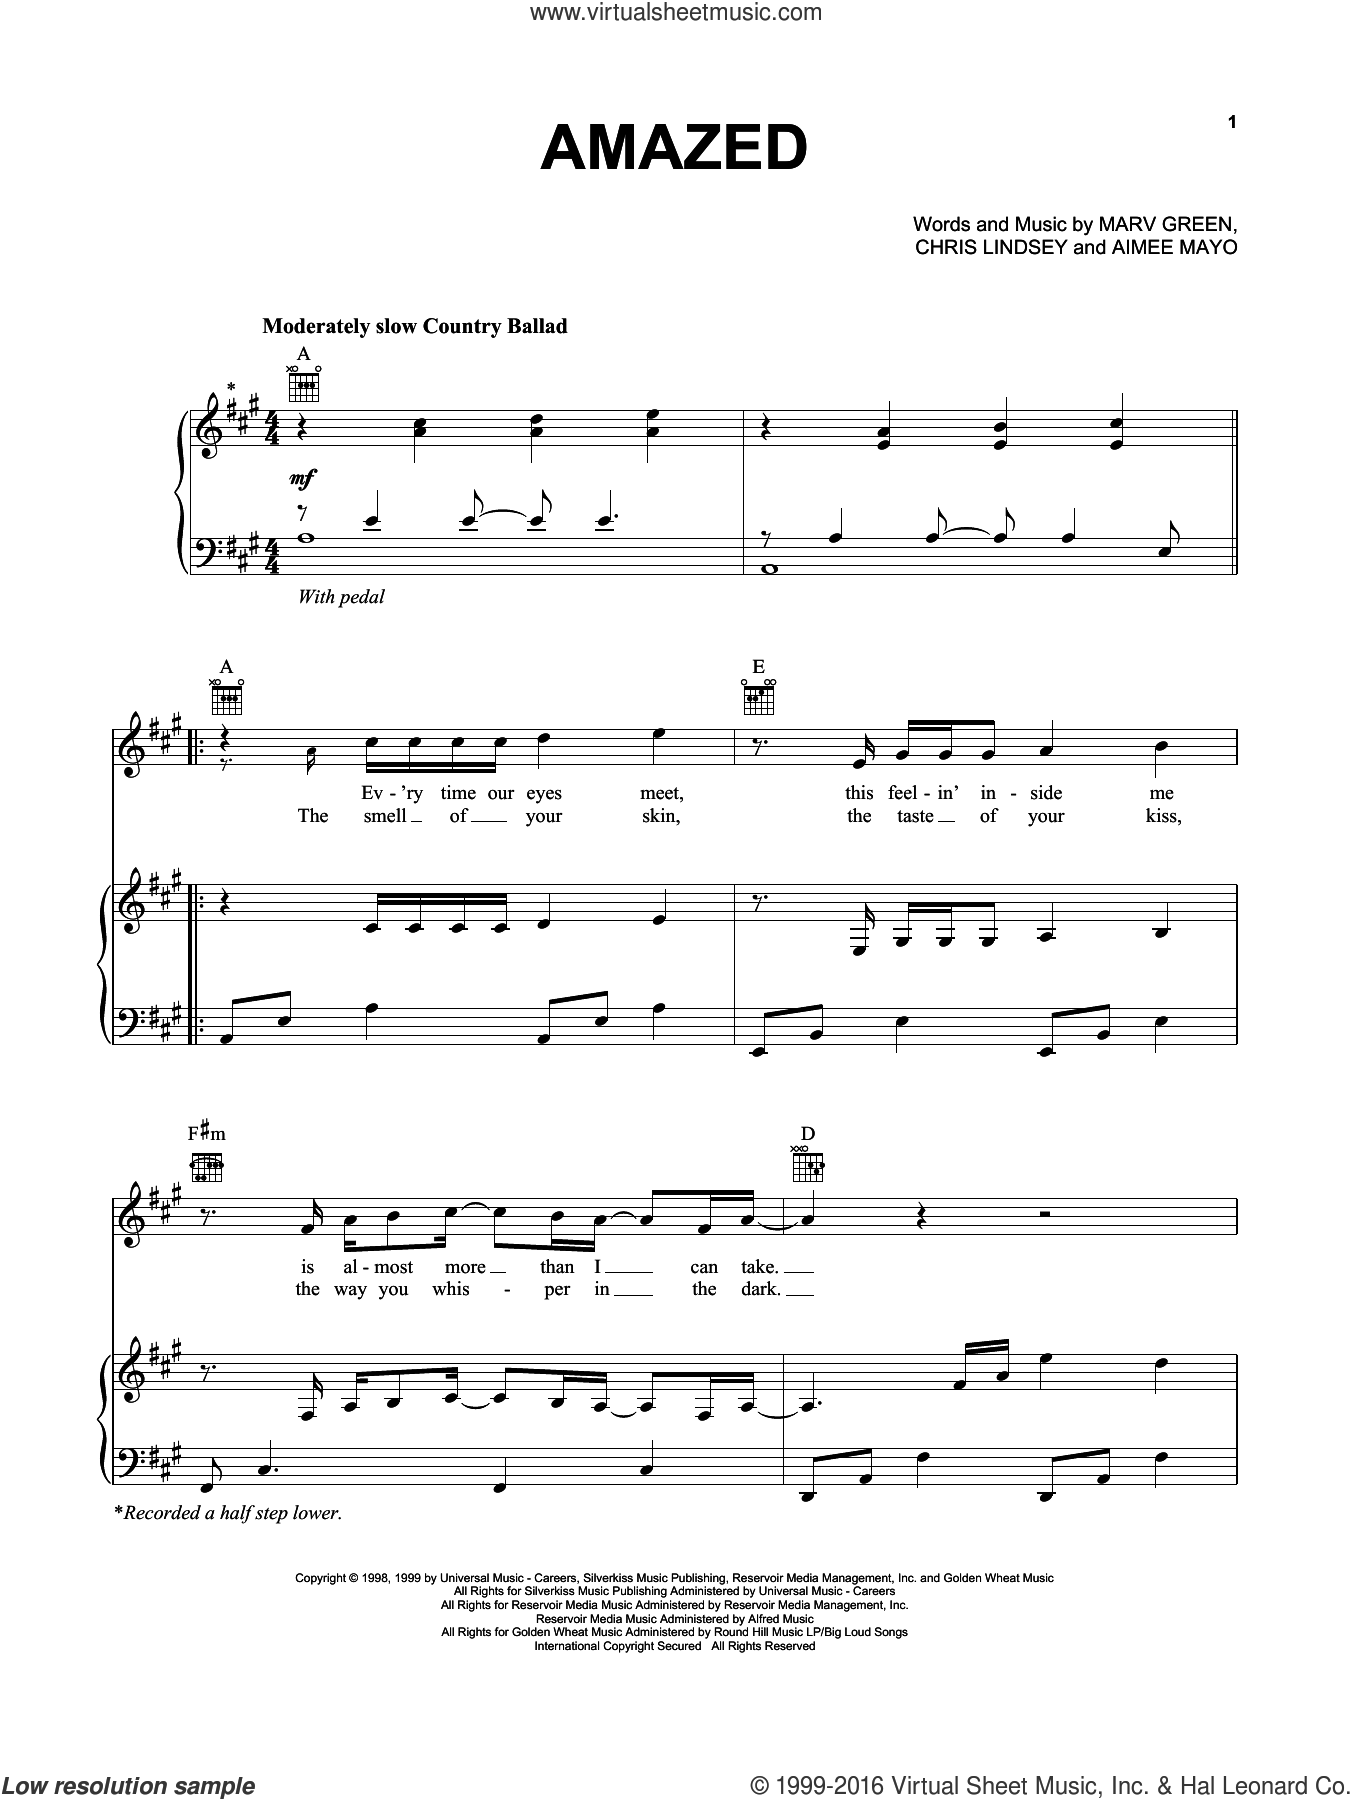 Amazed sheet music for voice, piano or guitar by Marv Green